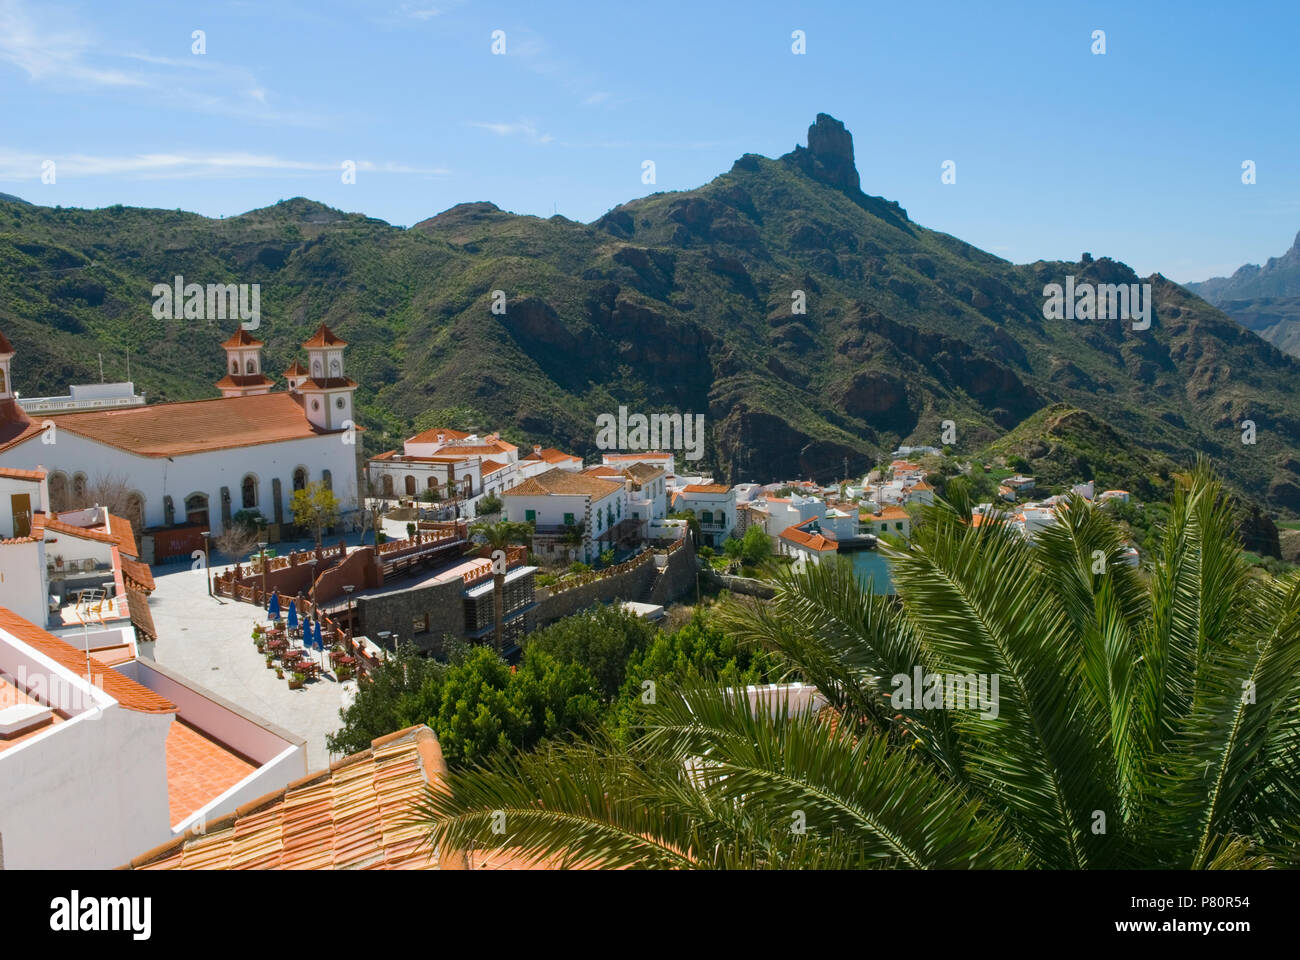 View over Tejeda and Roque Bentayga in centre of island of Gran Canaria, Canary Islands, Spain - Stock Image